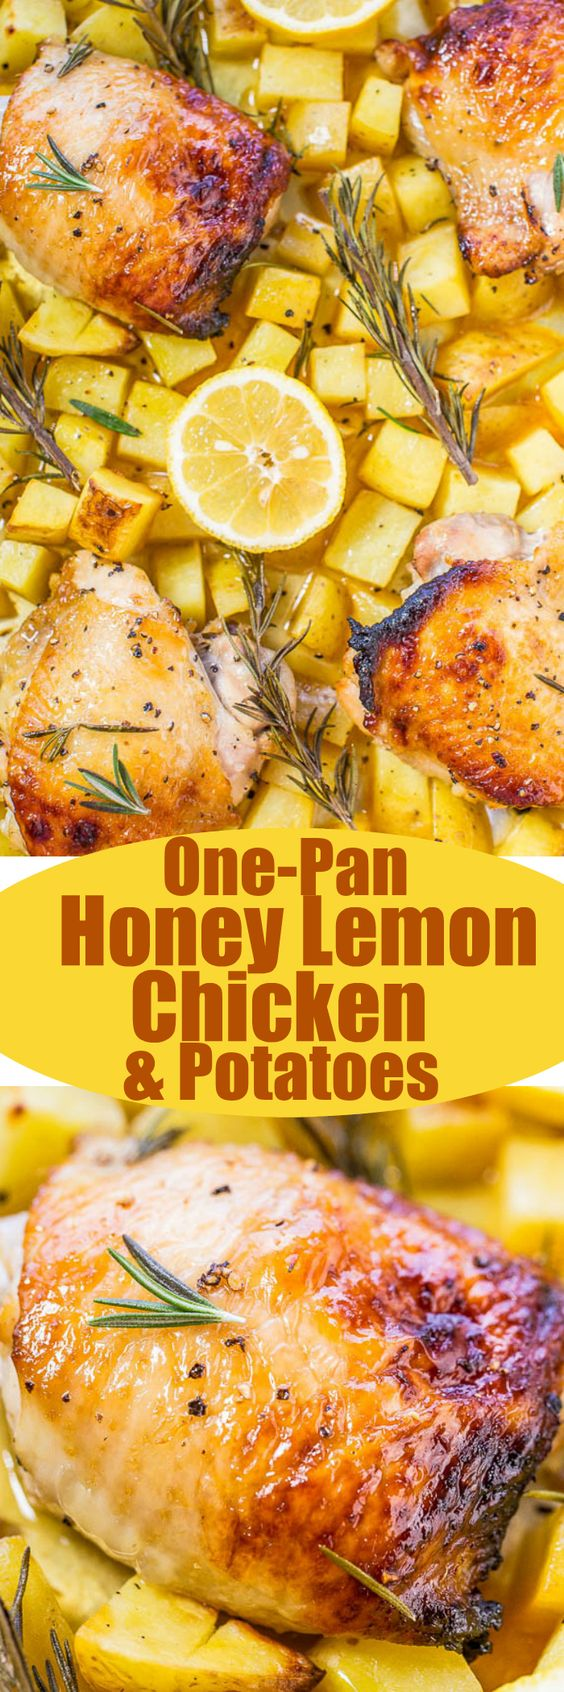 One Sheet Pan Honey Lemon Chicken and Roasted Potatoes Recipe via Averie Cooks - Juicy chicken with a honey lemon glaze that's tangy-sweet and so good!! Healthy, fast, so easy, and cleanup is a breeze!!